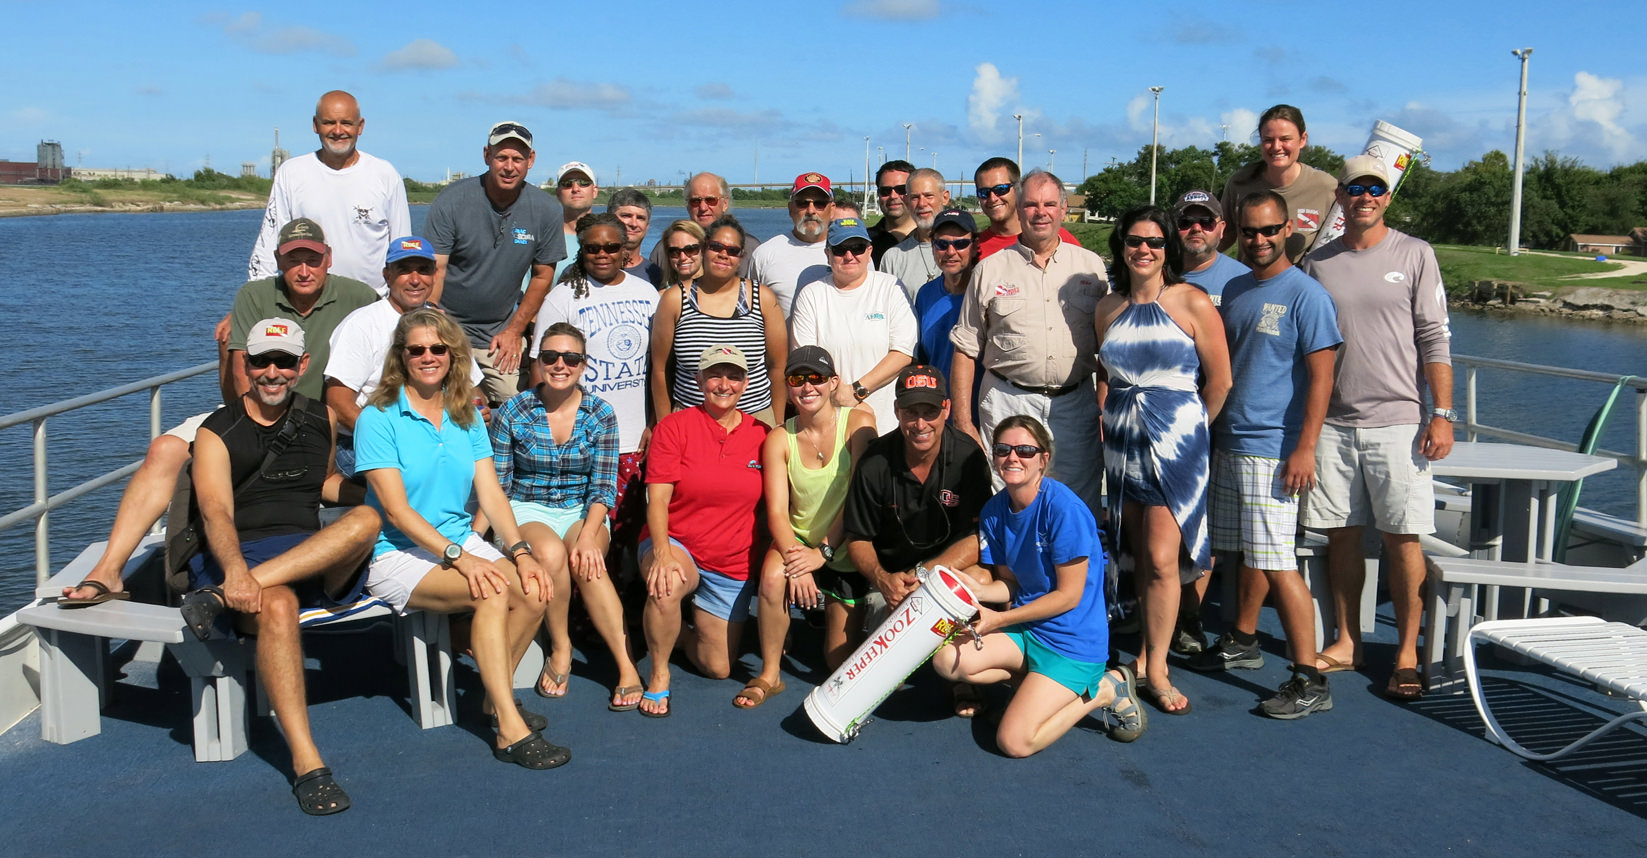 Group photo of participants from the 2015 Lionfish Invitational on the top deck of M/V Fling